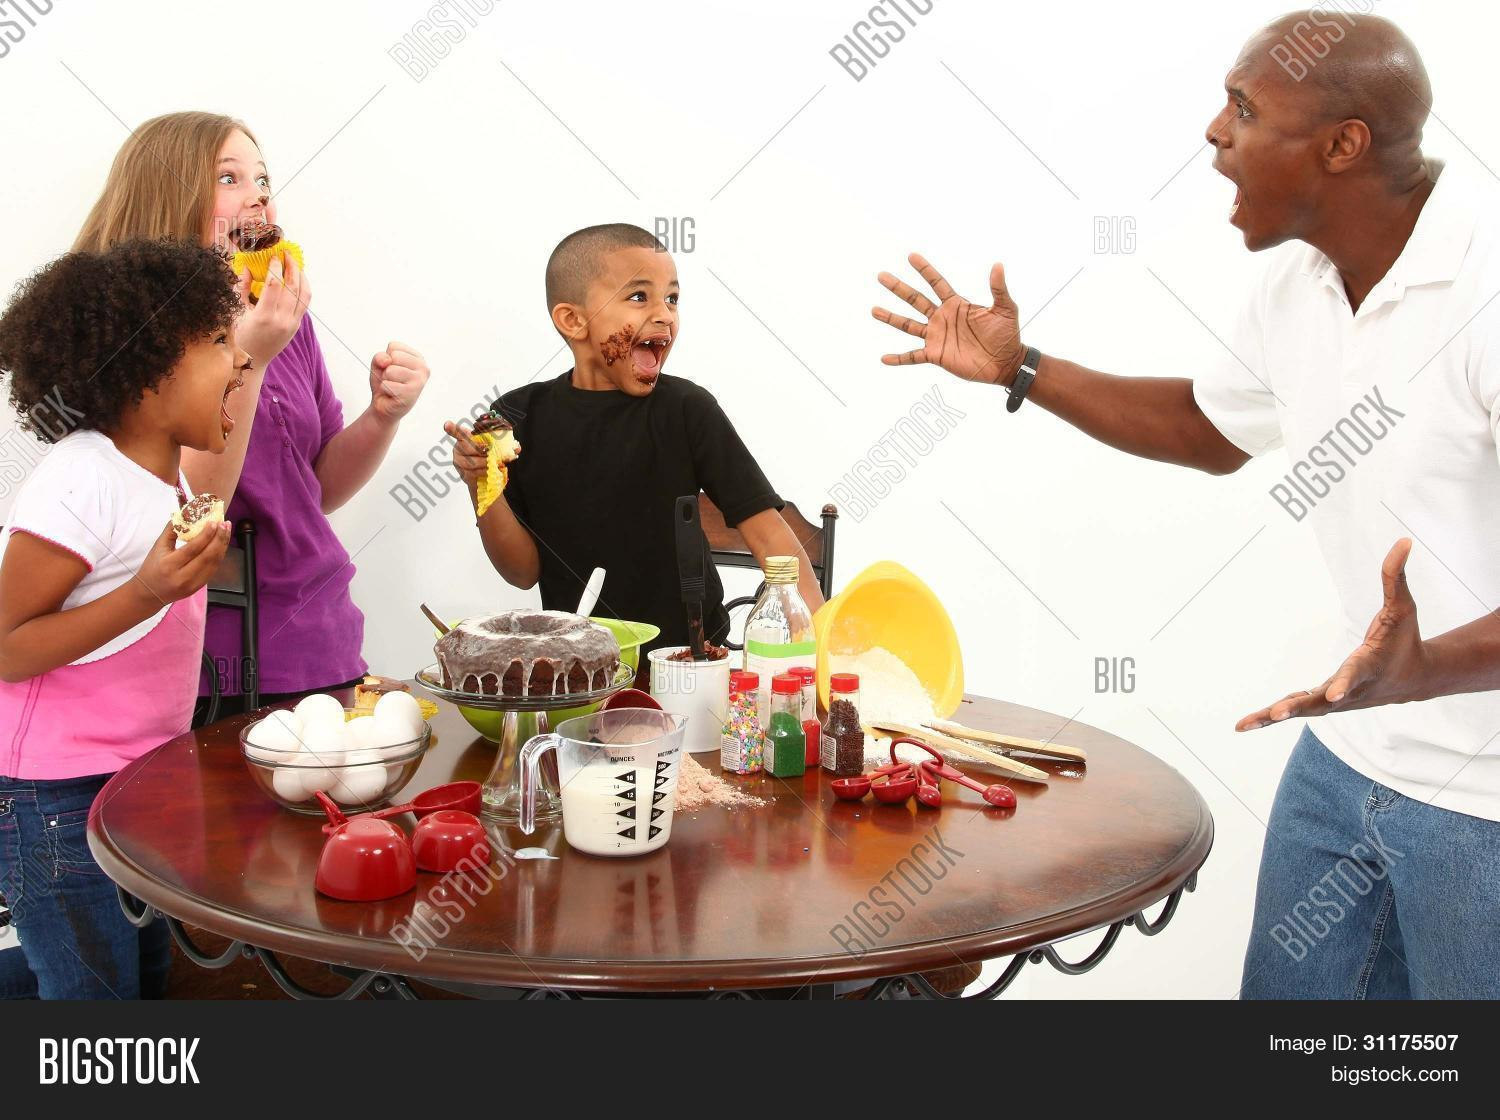 Interacial Classy angry dad finds kids making mess image & photo | bigstock